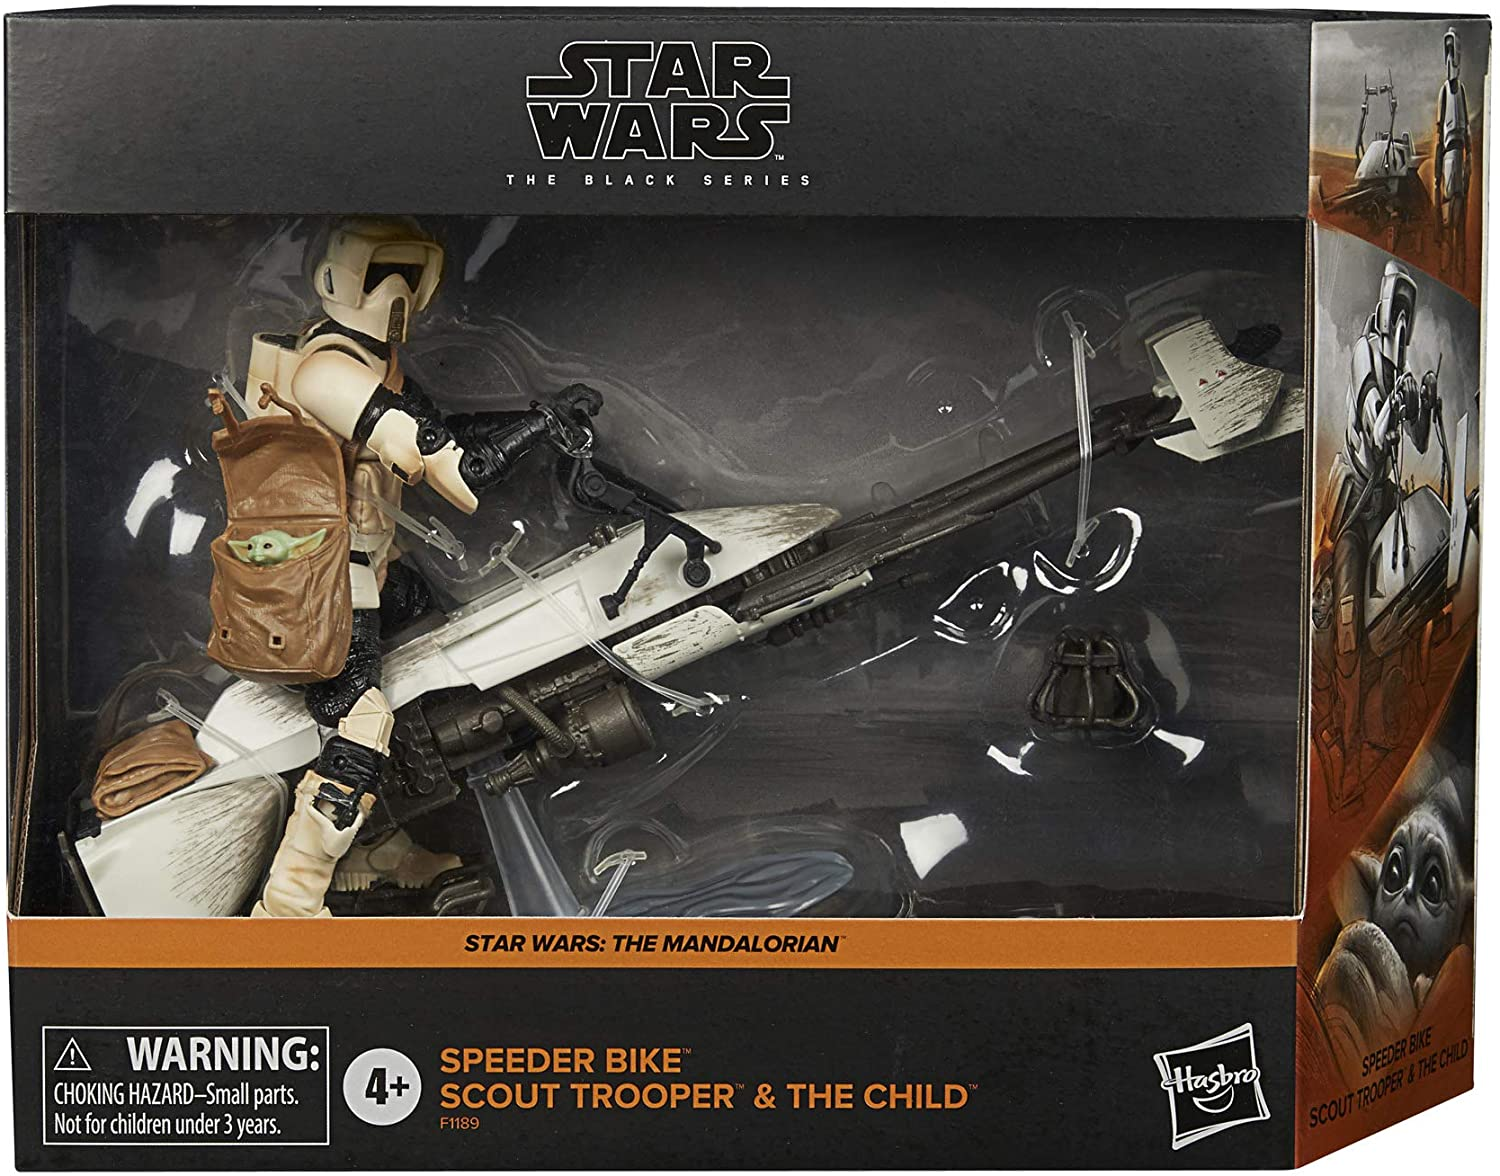 Star Wars The Black Series: Speeder Bike Scout Trooper Special Mandalorian Edition Now Available